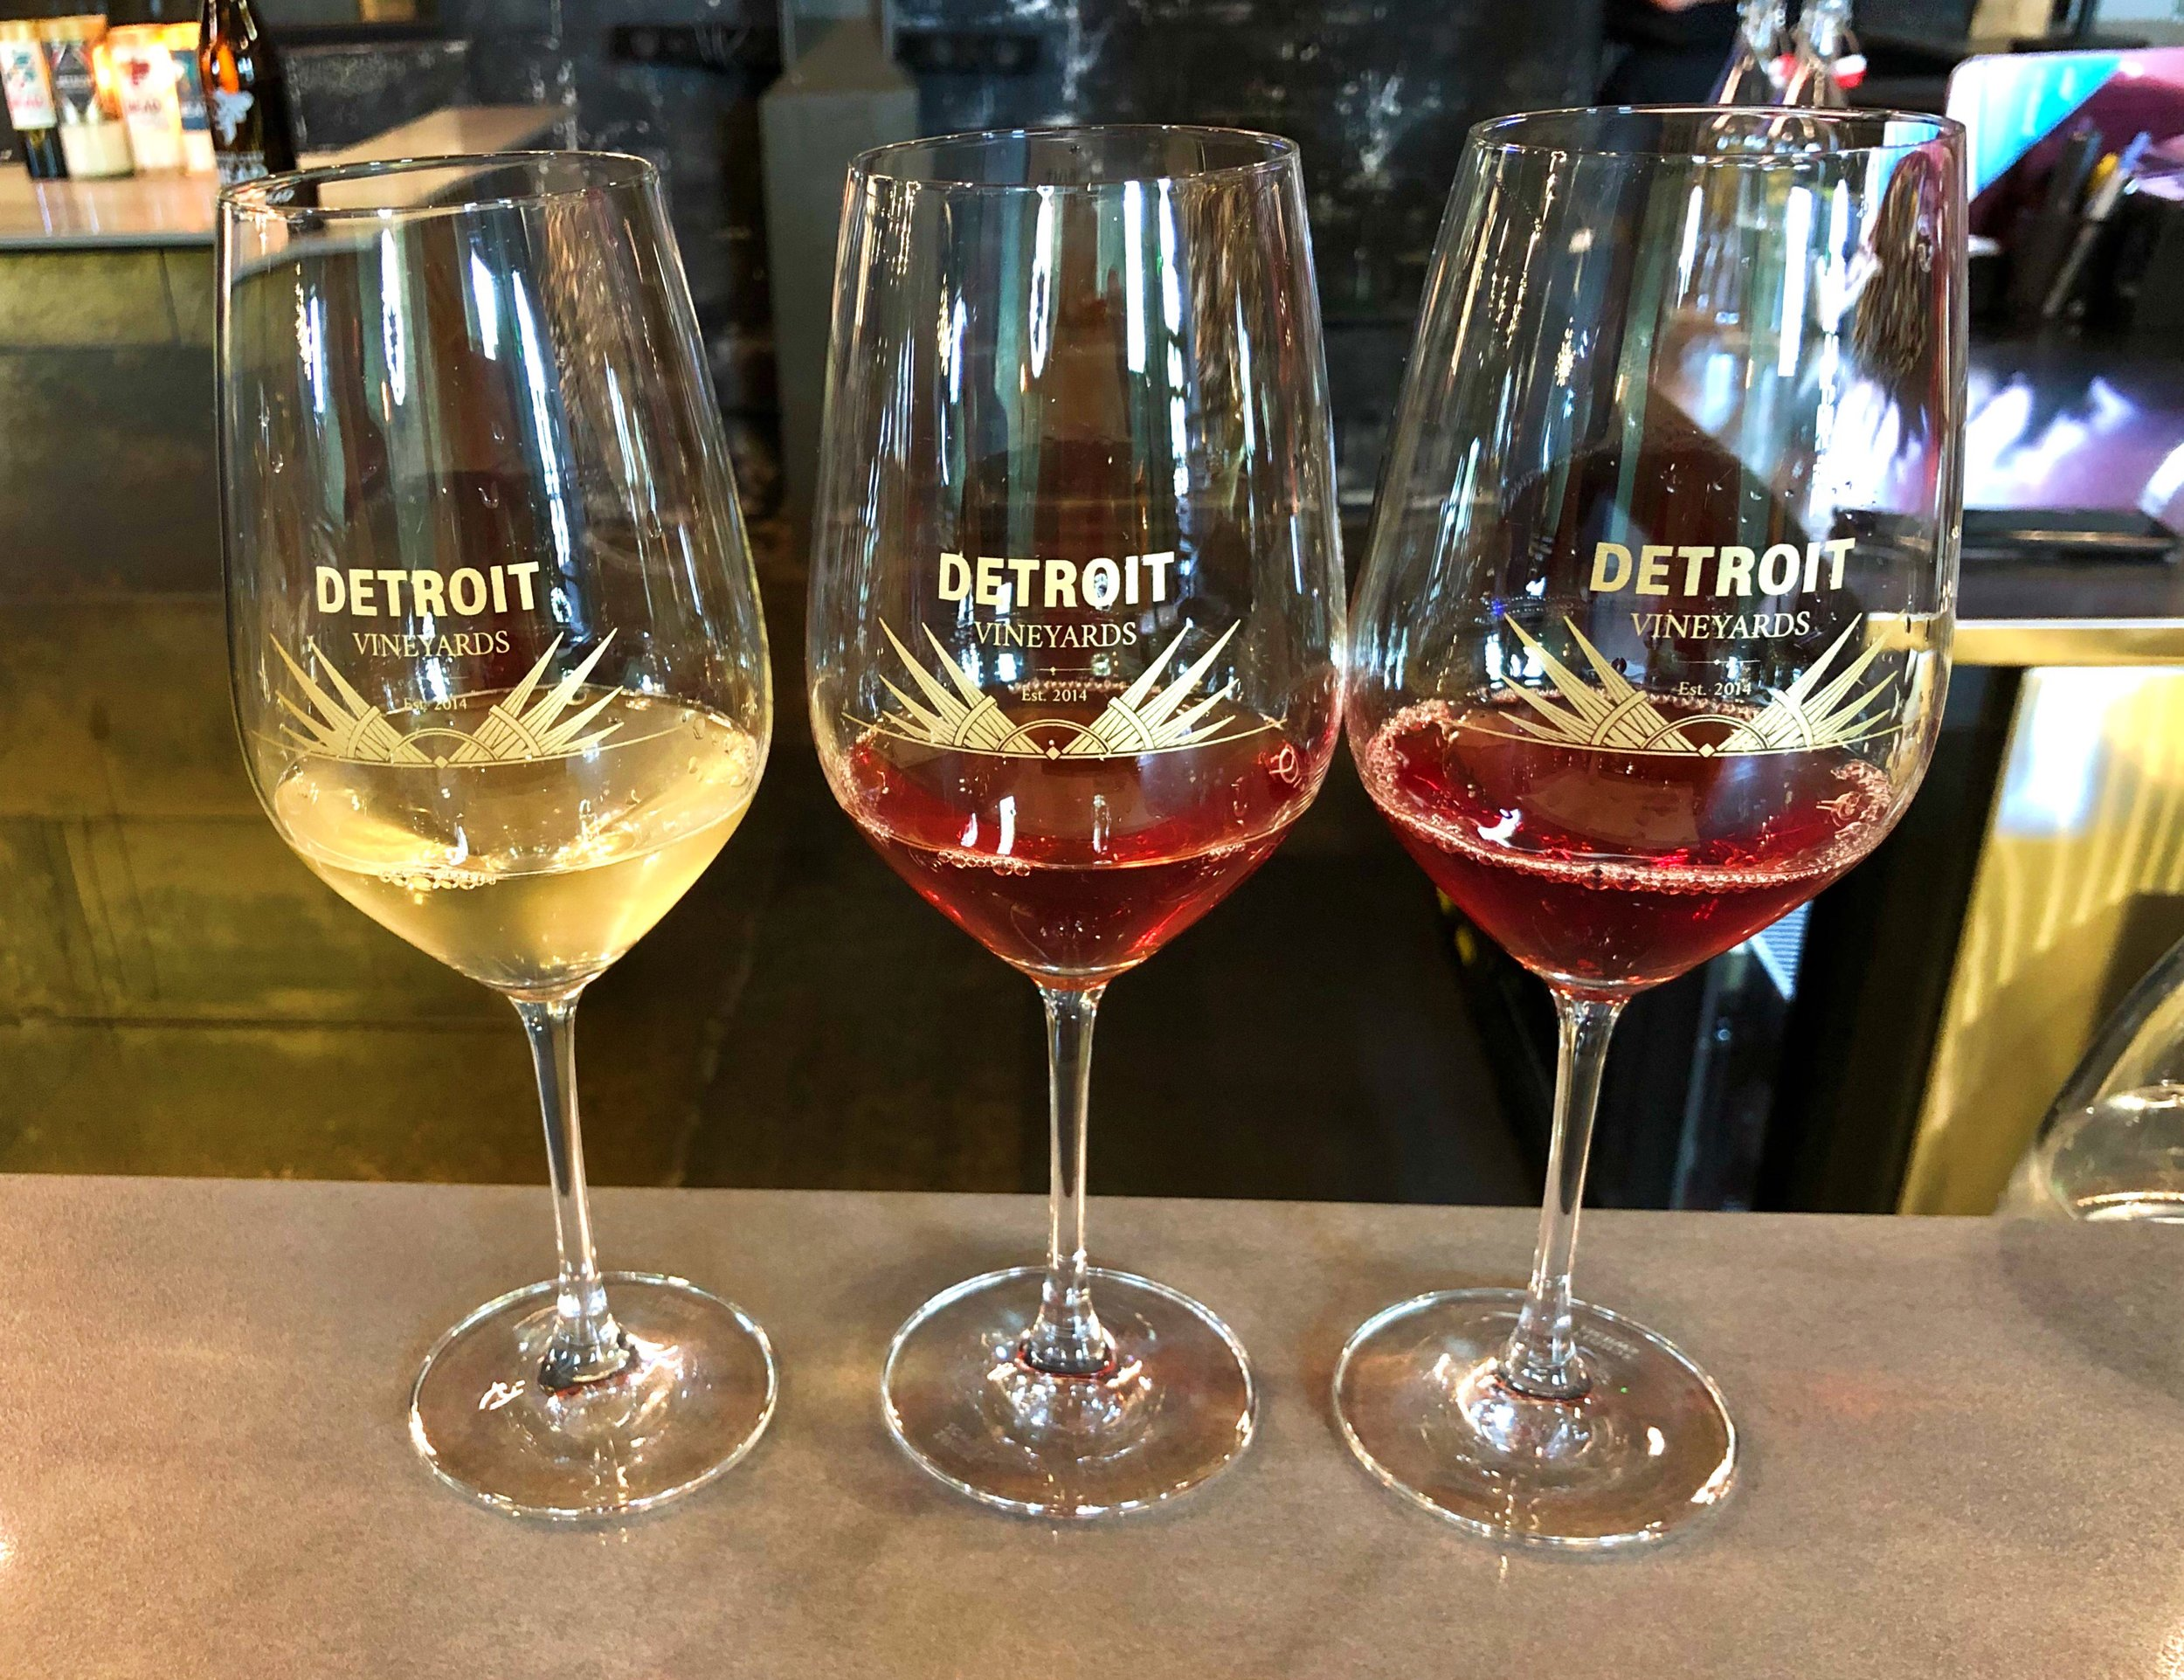 I love the art deco design of the logo on the glassware at Detroit Vineyards